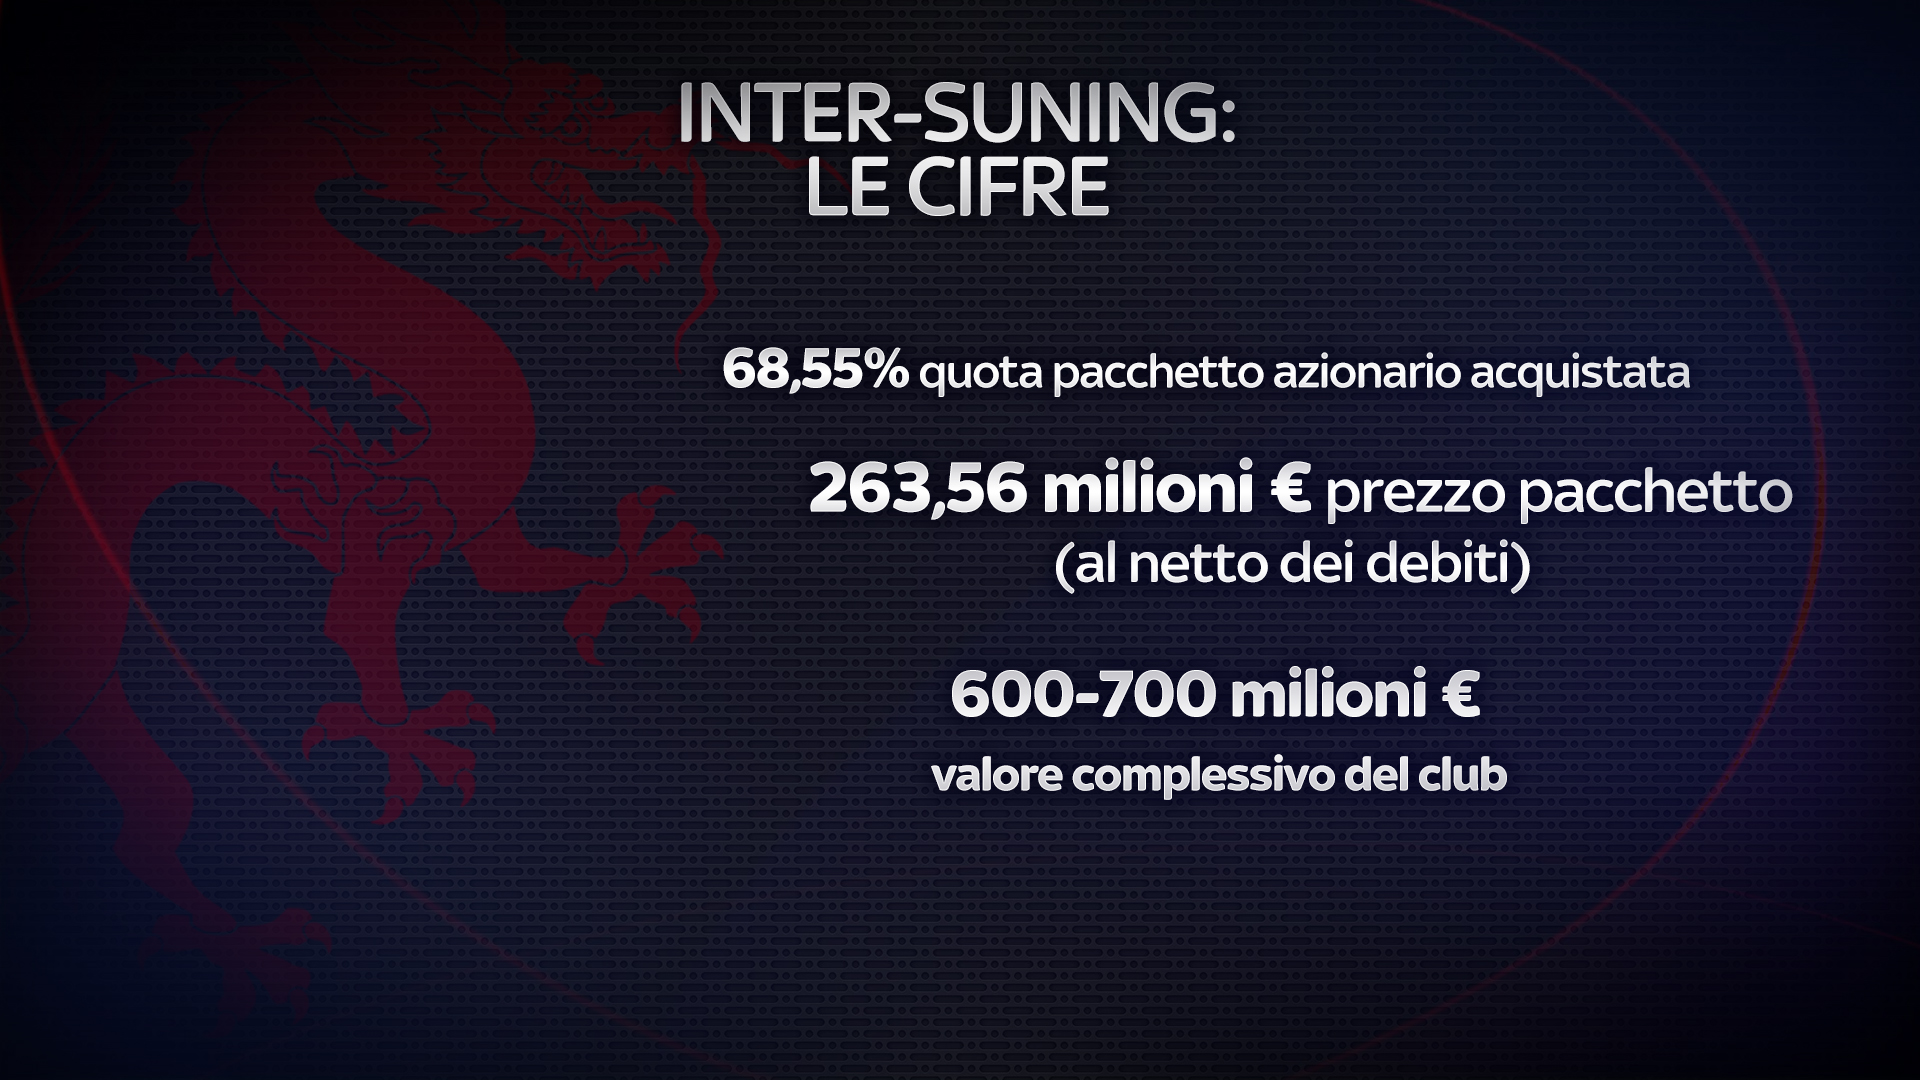 04_INTER-SUNING_LE_CIFRE